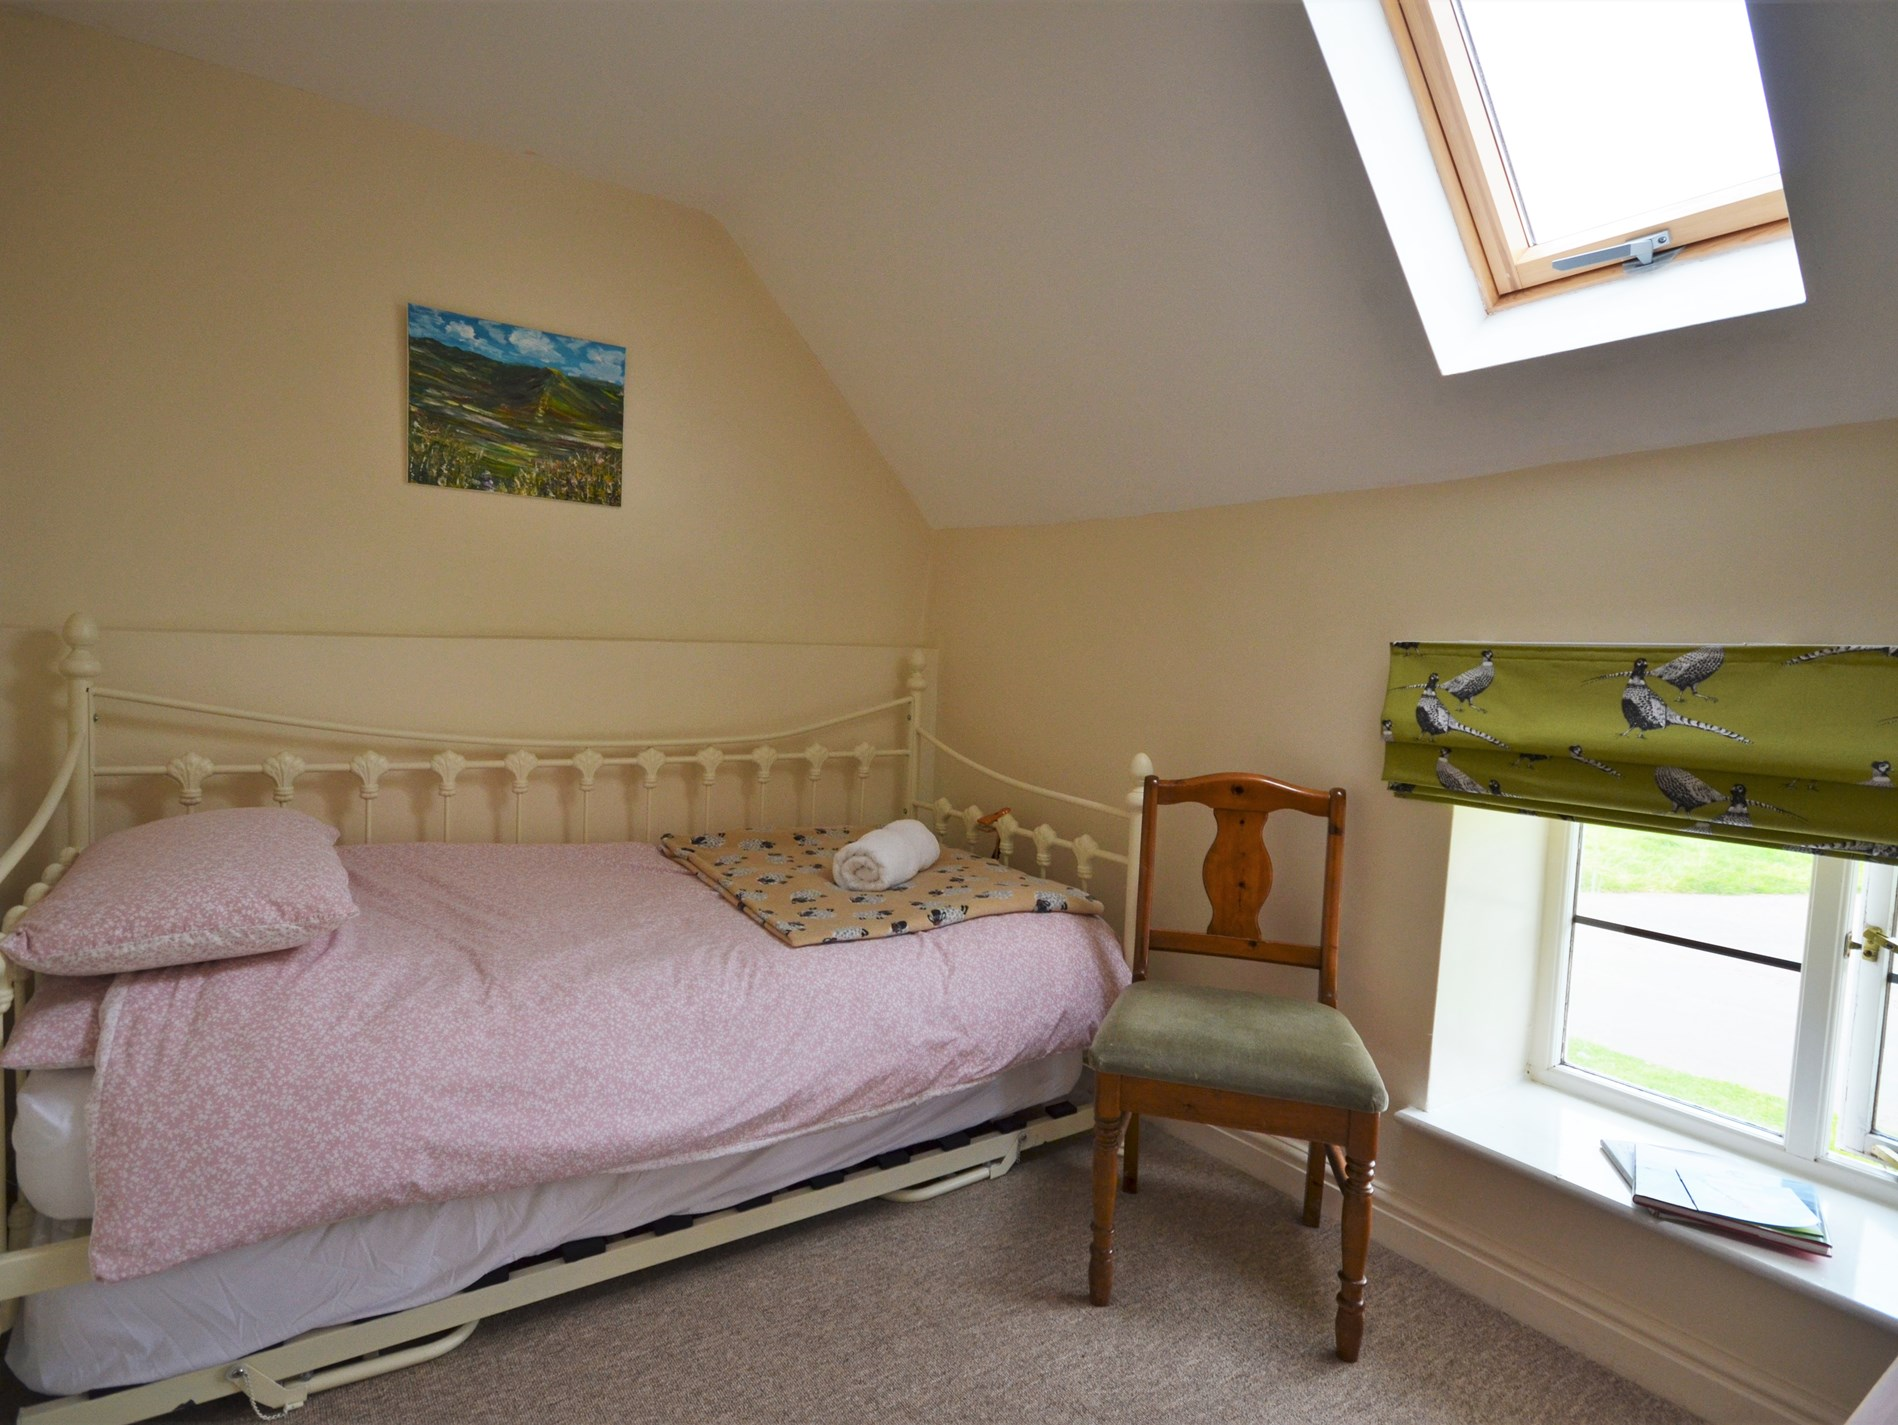 2 Bedroom Cottage in Brecon, Mid Wales